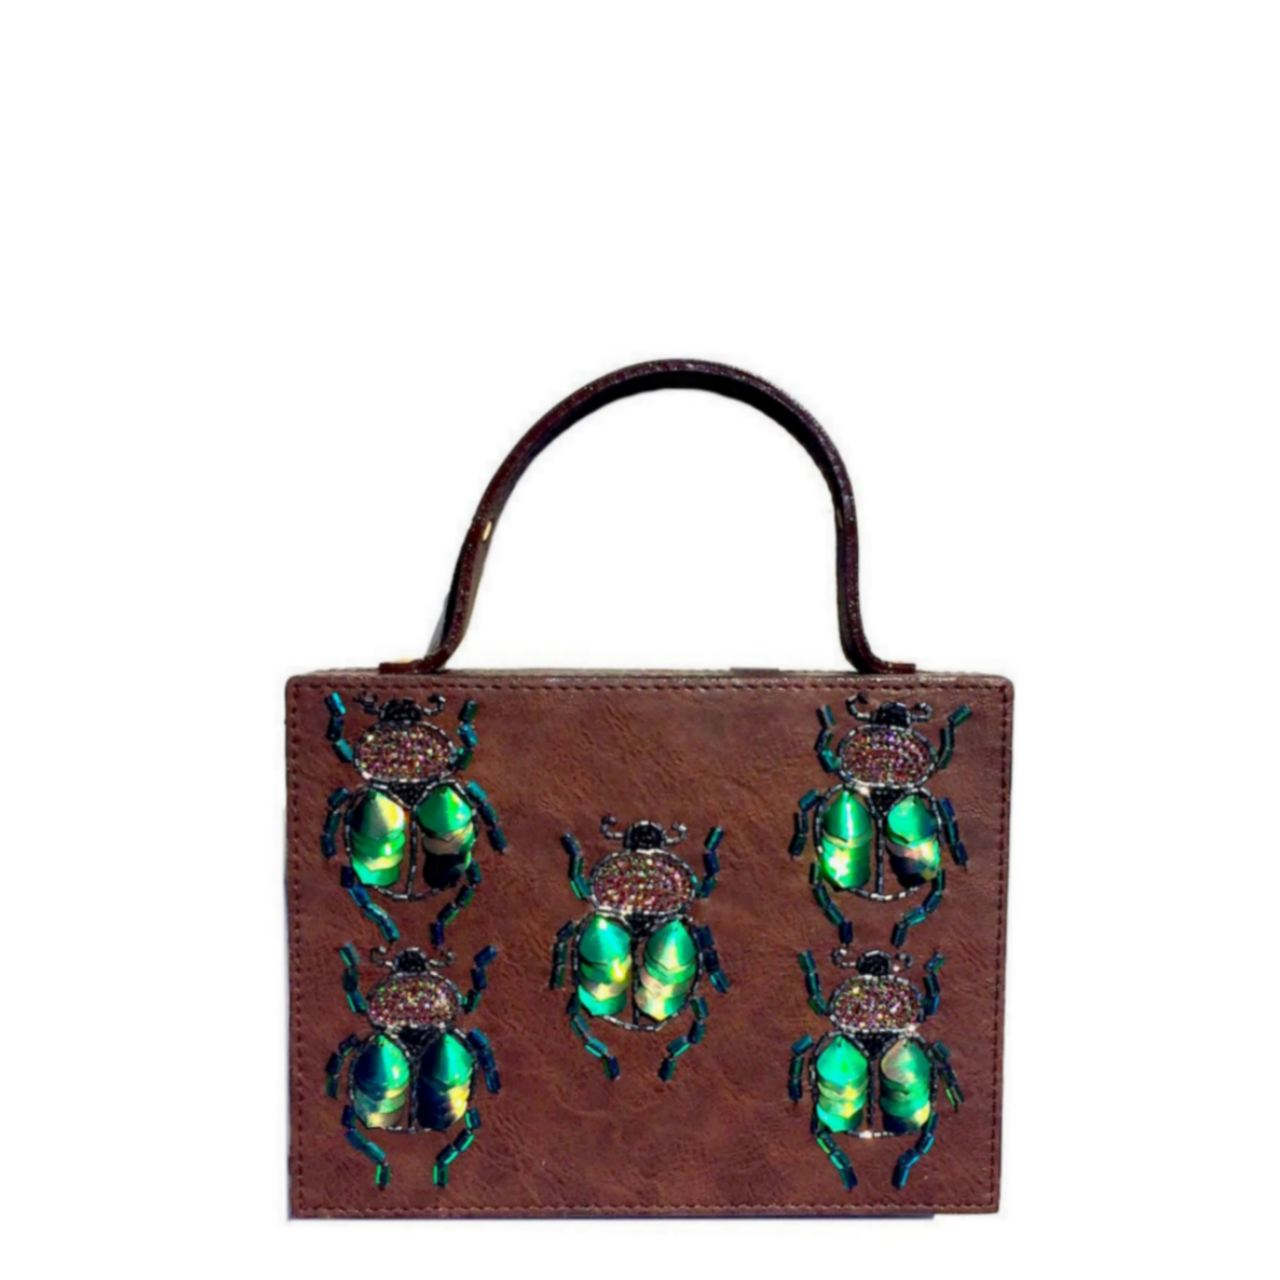 This structured beetle briefcase bag is made from faux leather with hand embroidered sequin and bead beetles. It has a faux leather handle and an additional metal chain which can go inside the bag. Can be carried as a cross sling bag too. It has black velvet lining. This bag is one of Simitri's iconic designs. It has been featured in NYLON magazne, Accessories Magazine and on Getty Images